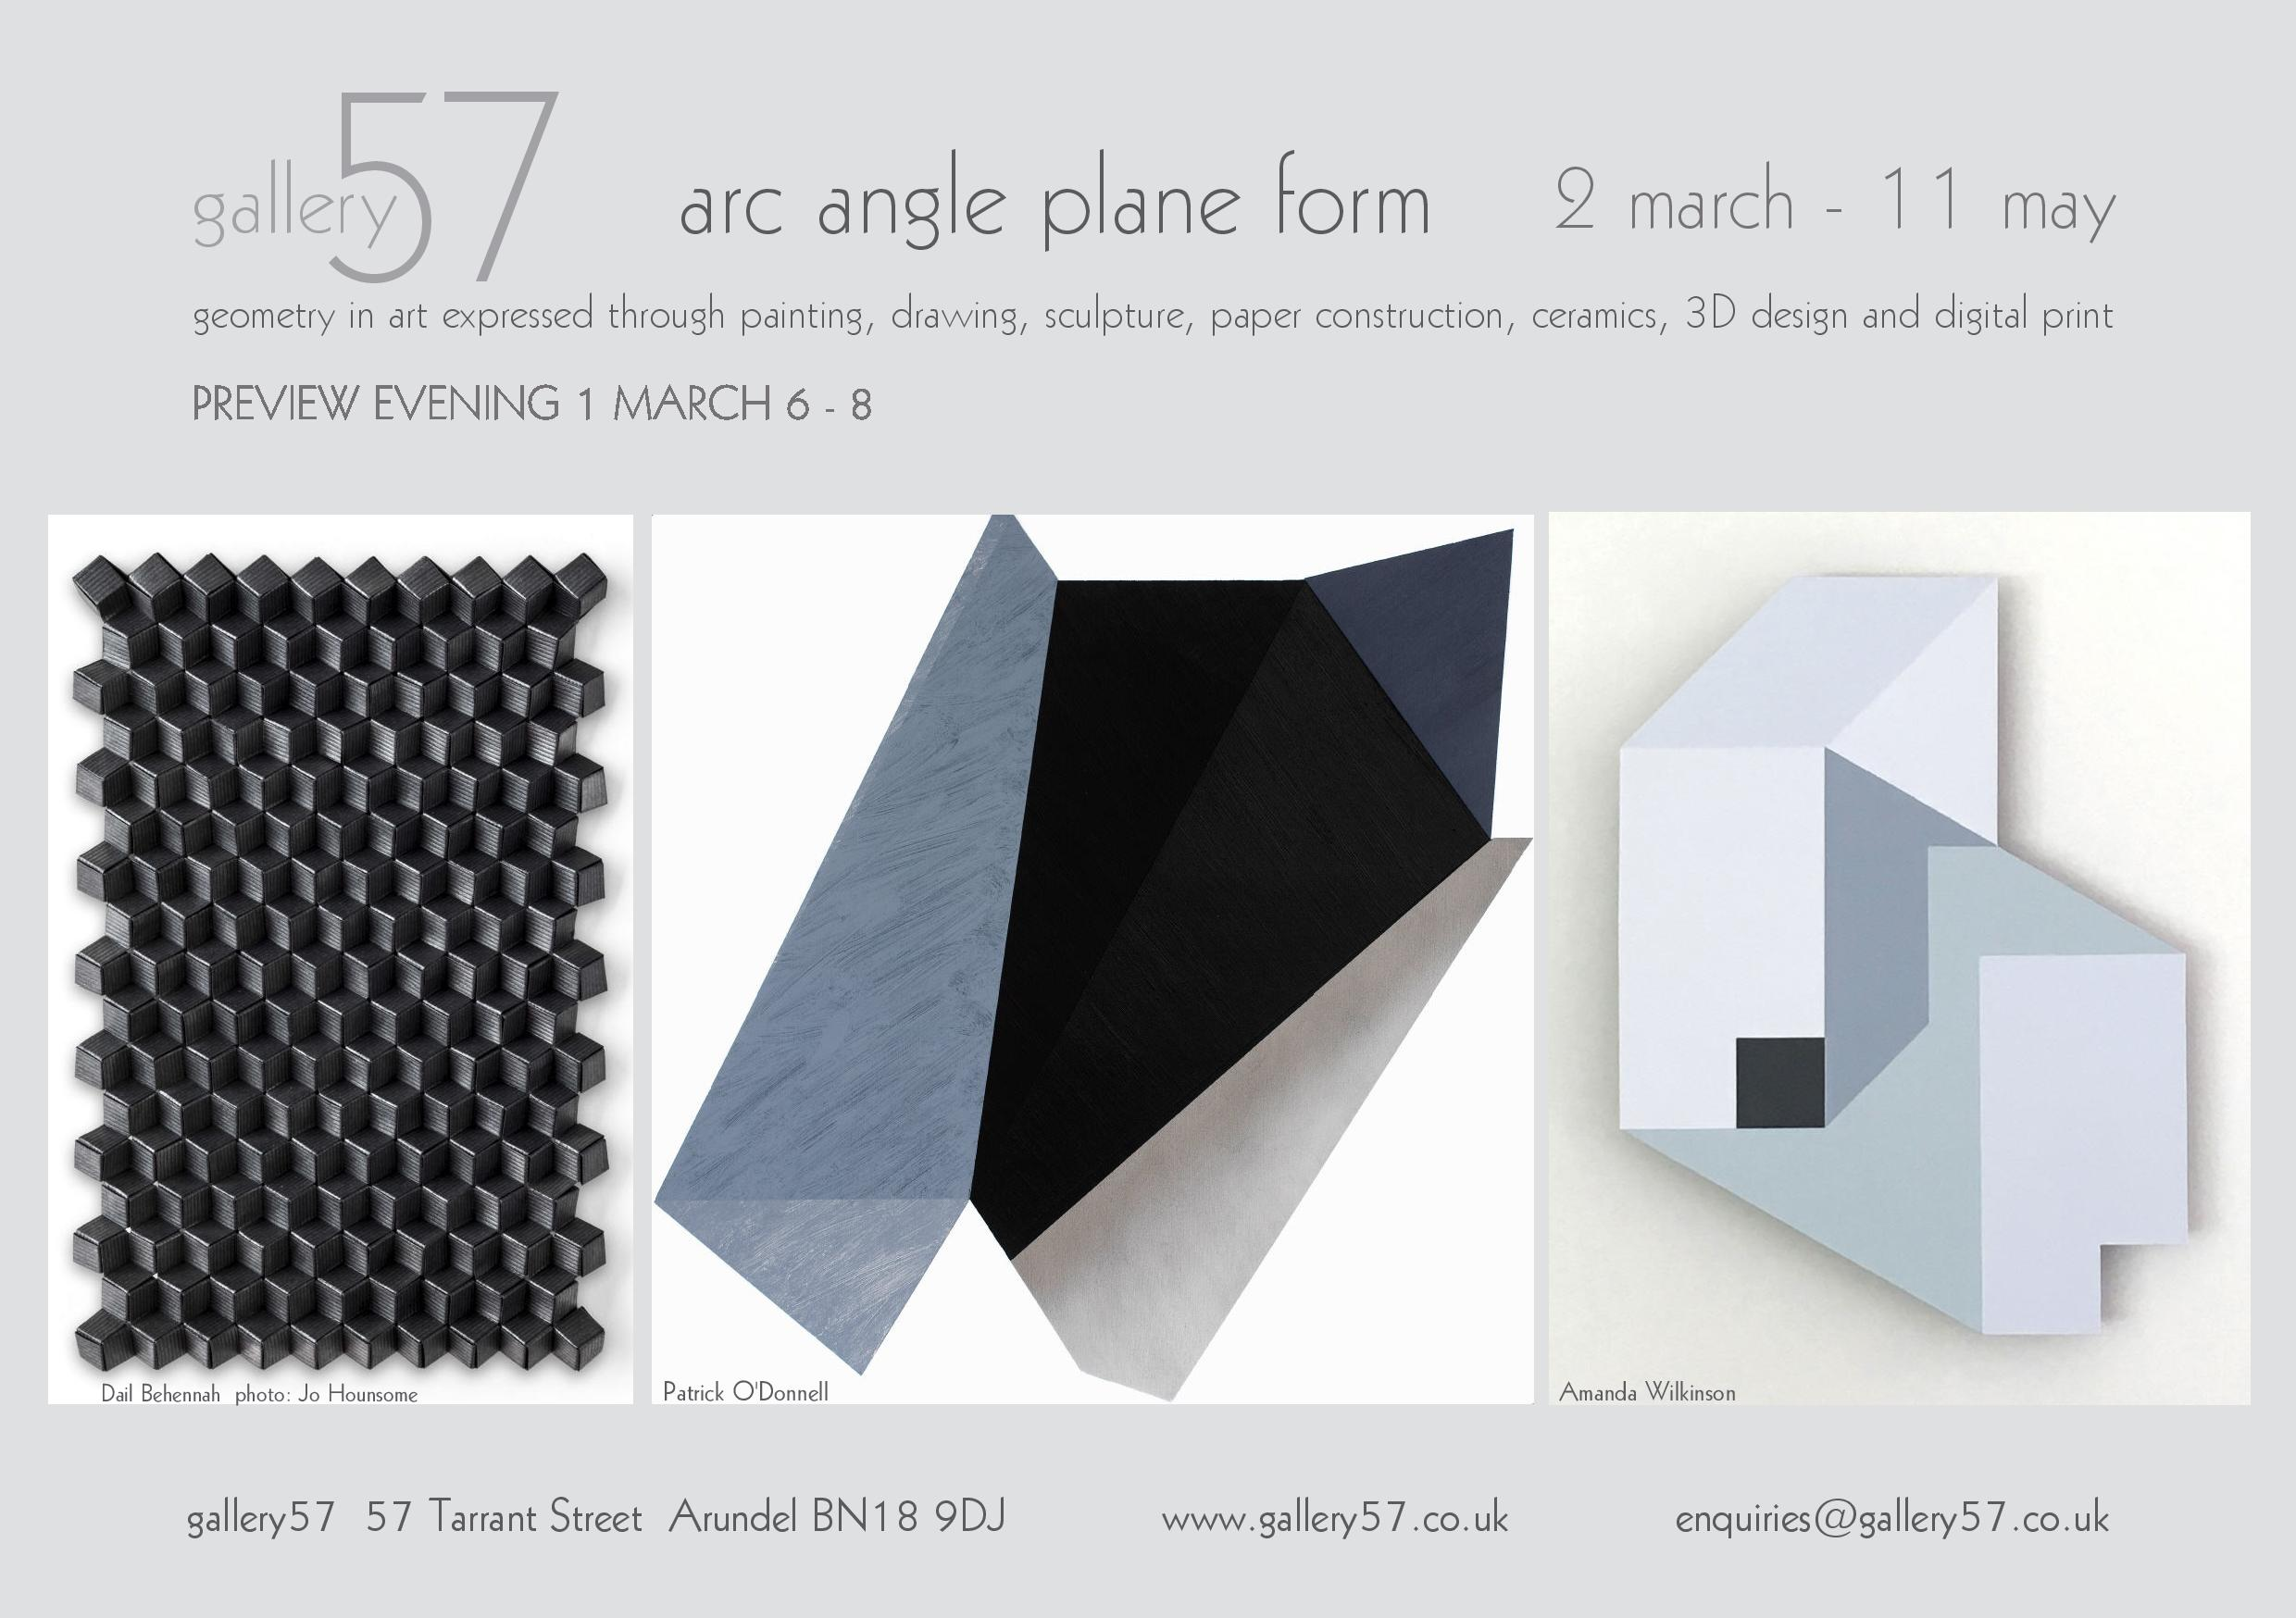 gallery57 arc angle flyer 4.JPG